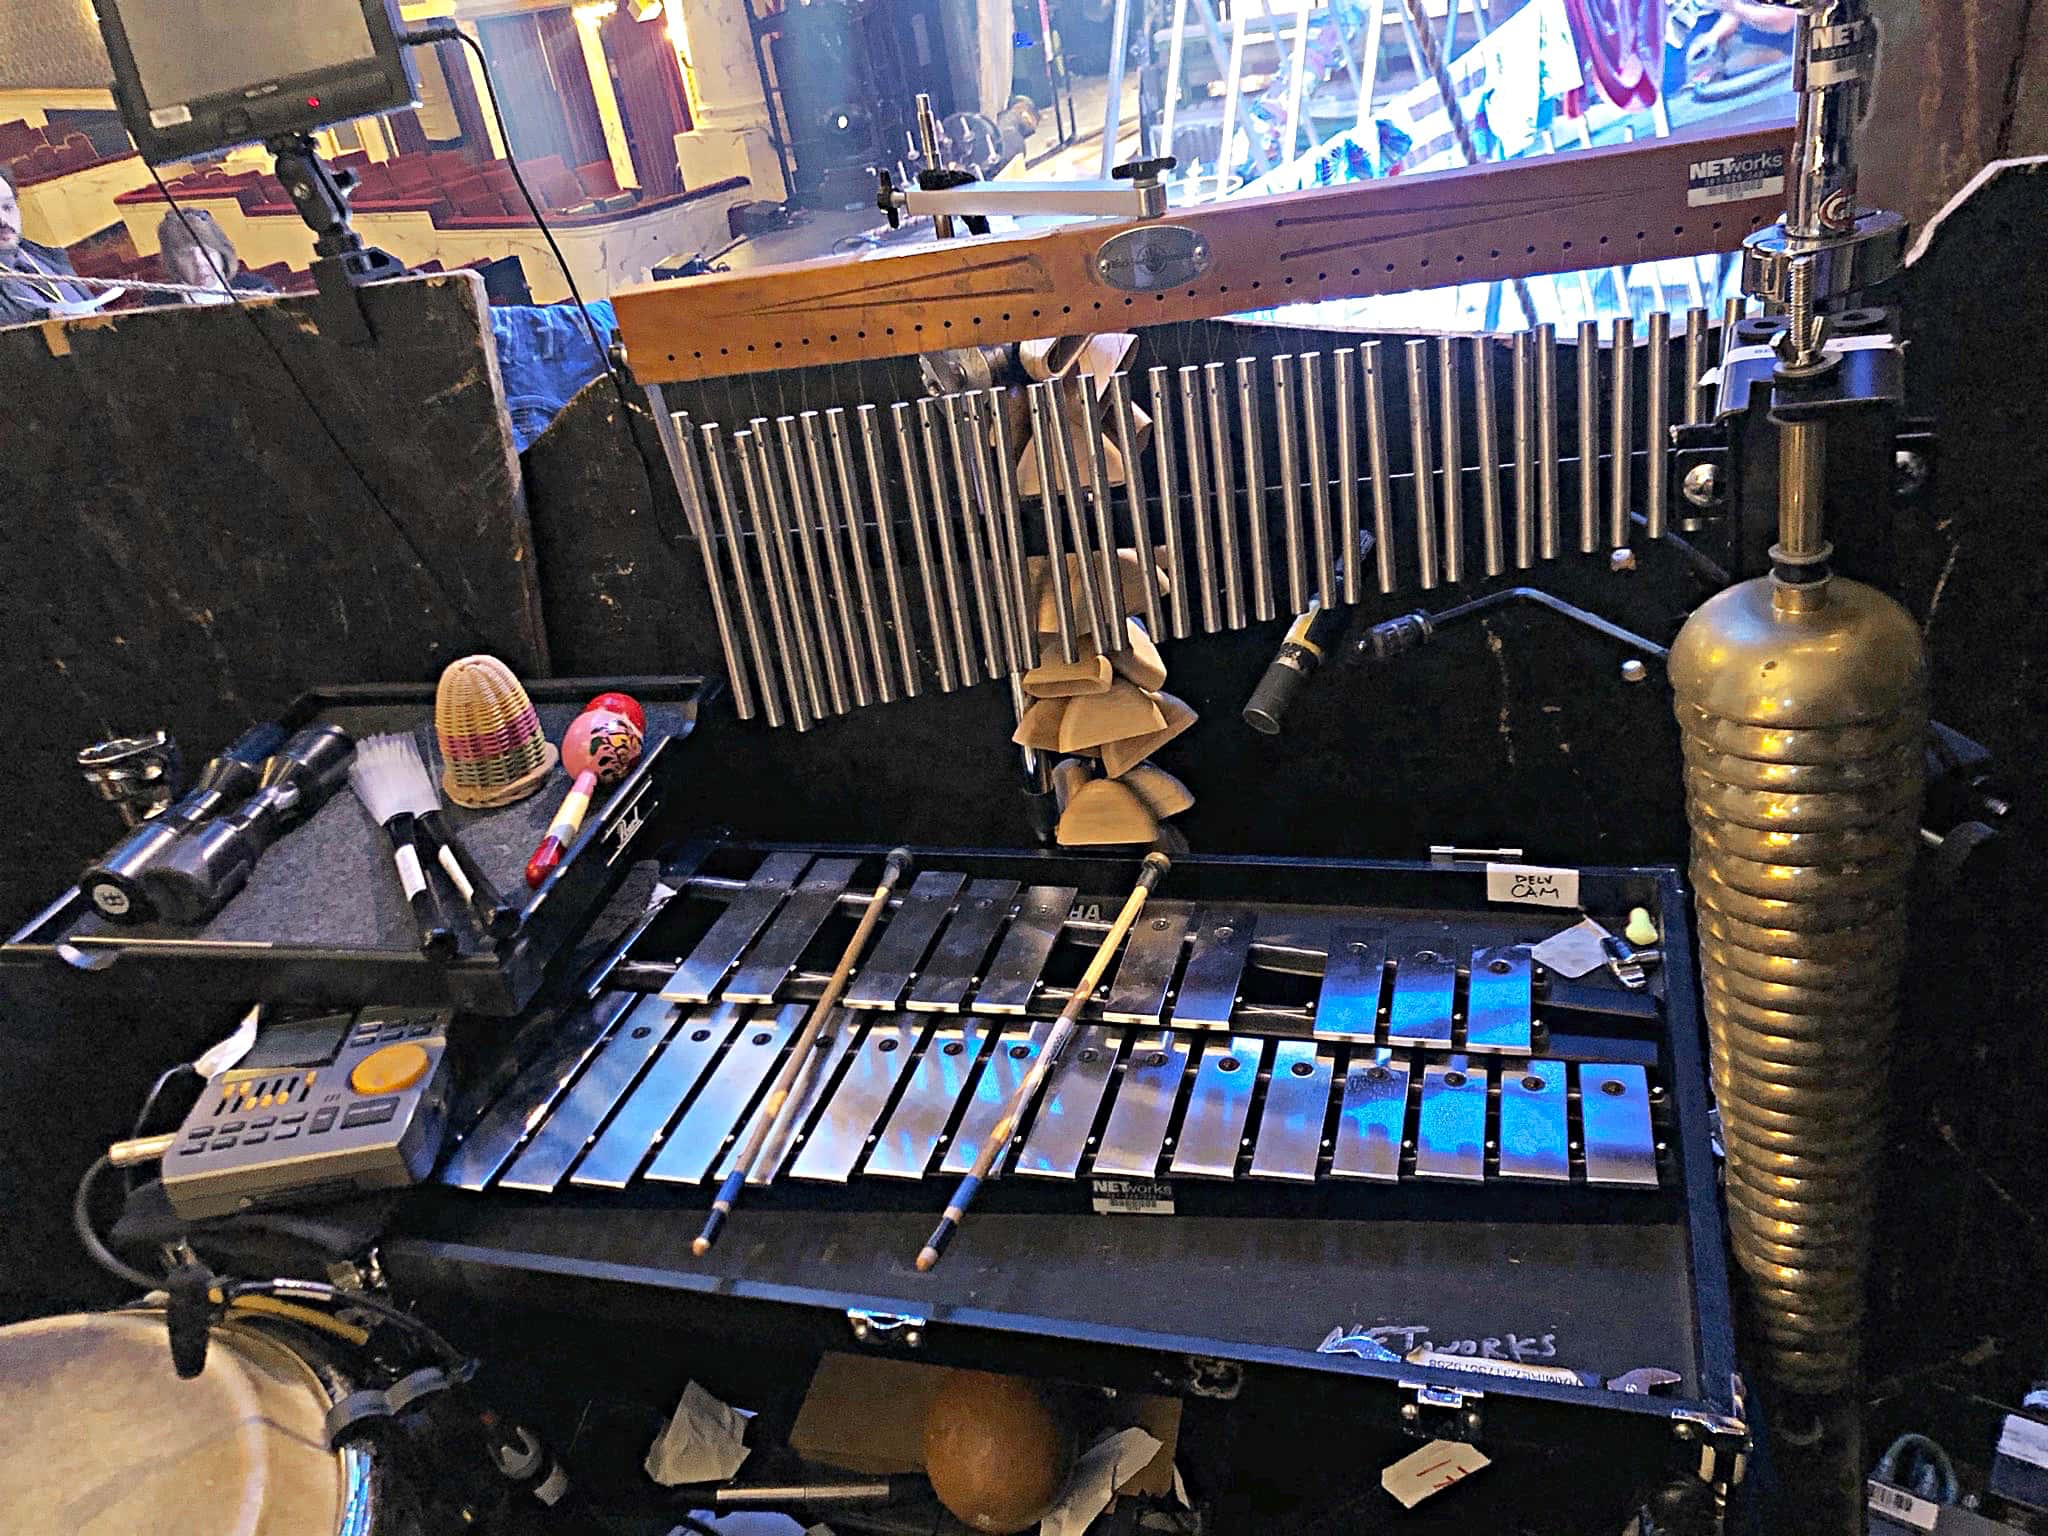 Mariana Ramirez's setup for the National Tour of Once On This Island at the Cadillac Palace Theatre in Chicago, Illinois.